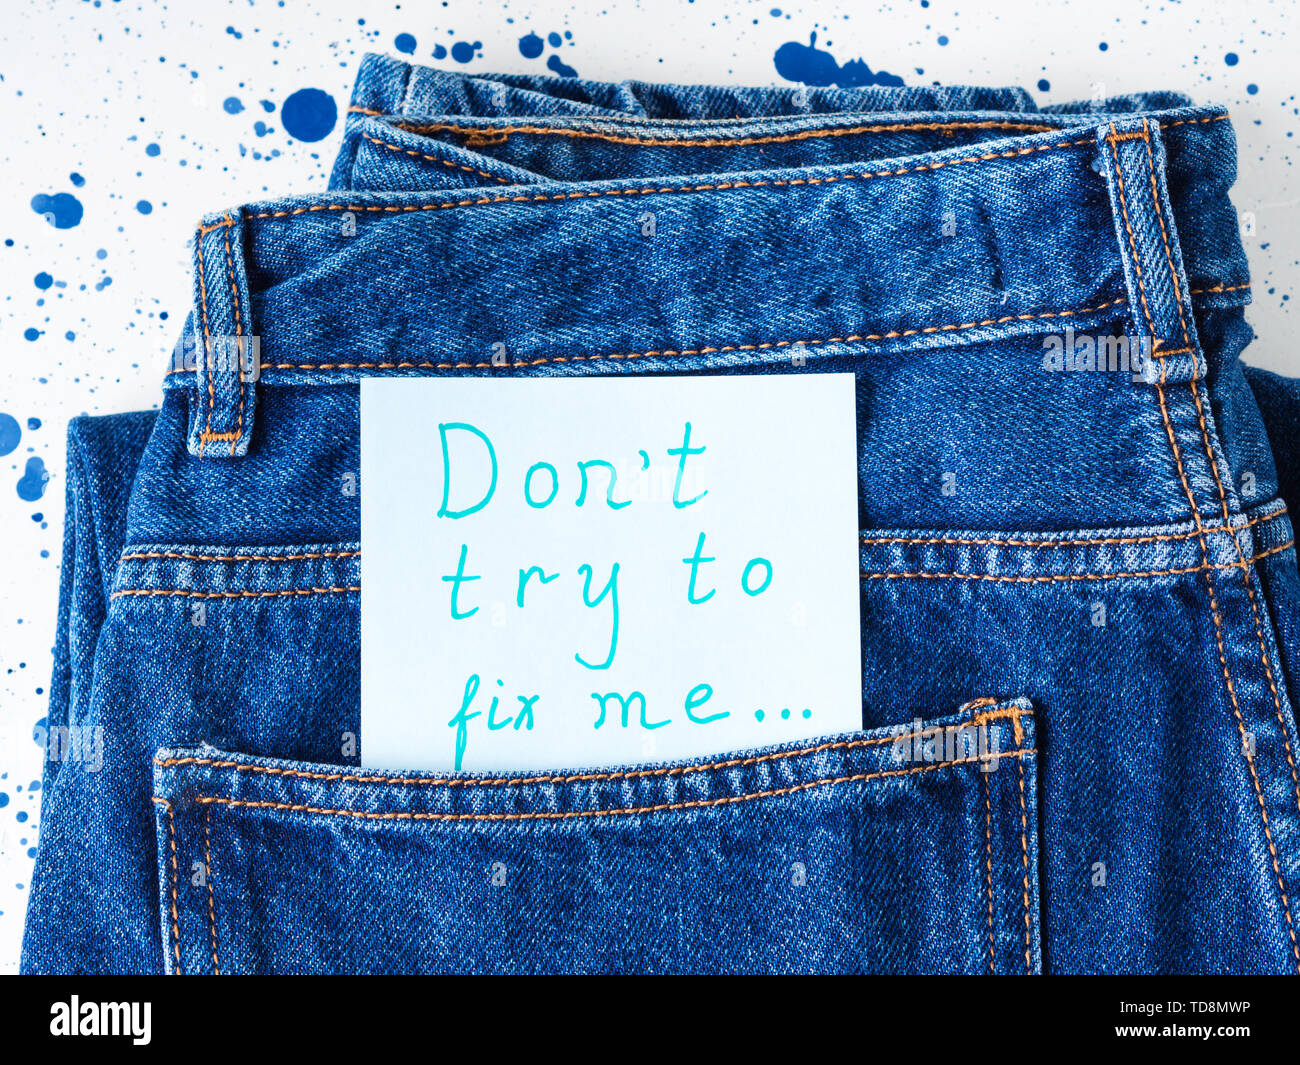 Don't try to fix me written message in jeans pocket. Broken relationship concept - Stock Image